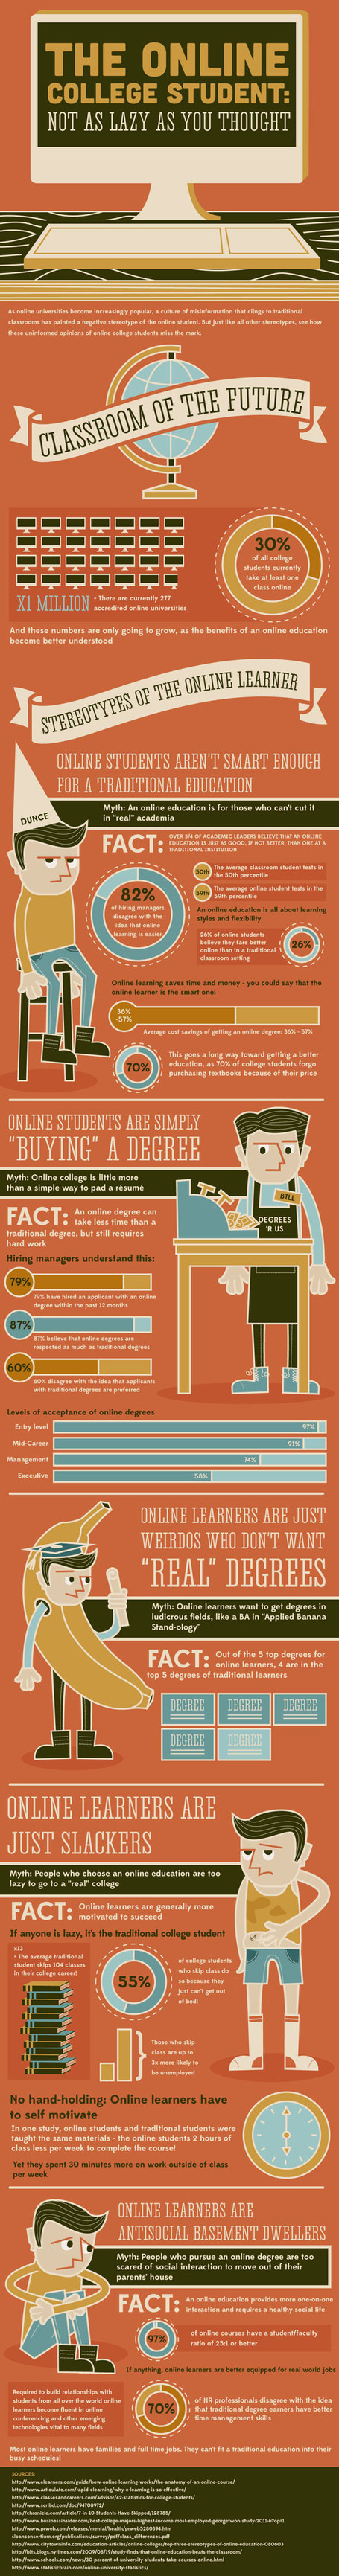 Do you have the wrong impression about online learning? [Infographic] | Technology and Education Resources | Scoop.it